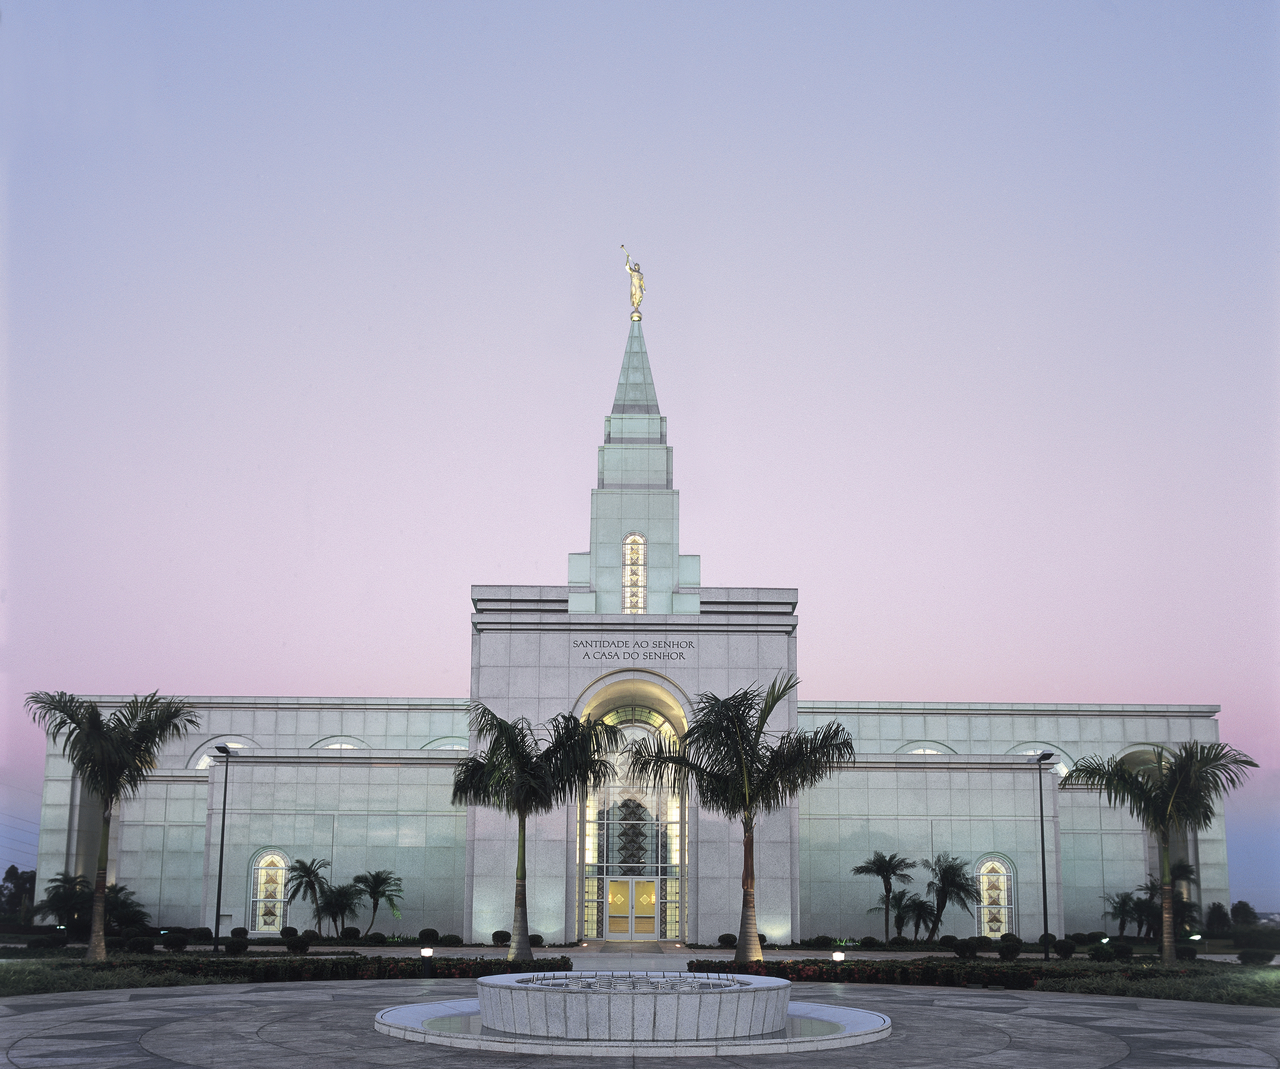 The Campinas Brazil Temple lit up in the early evening, with palm trees near the entrance.